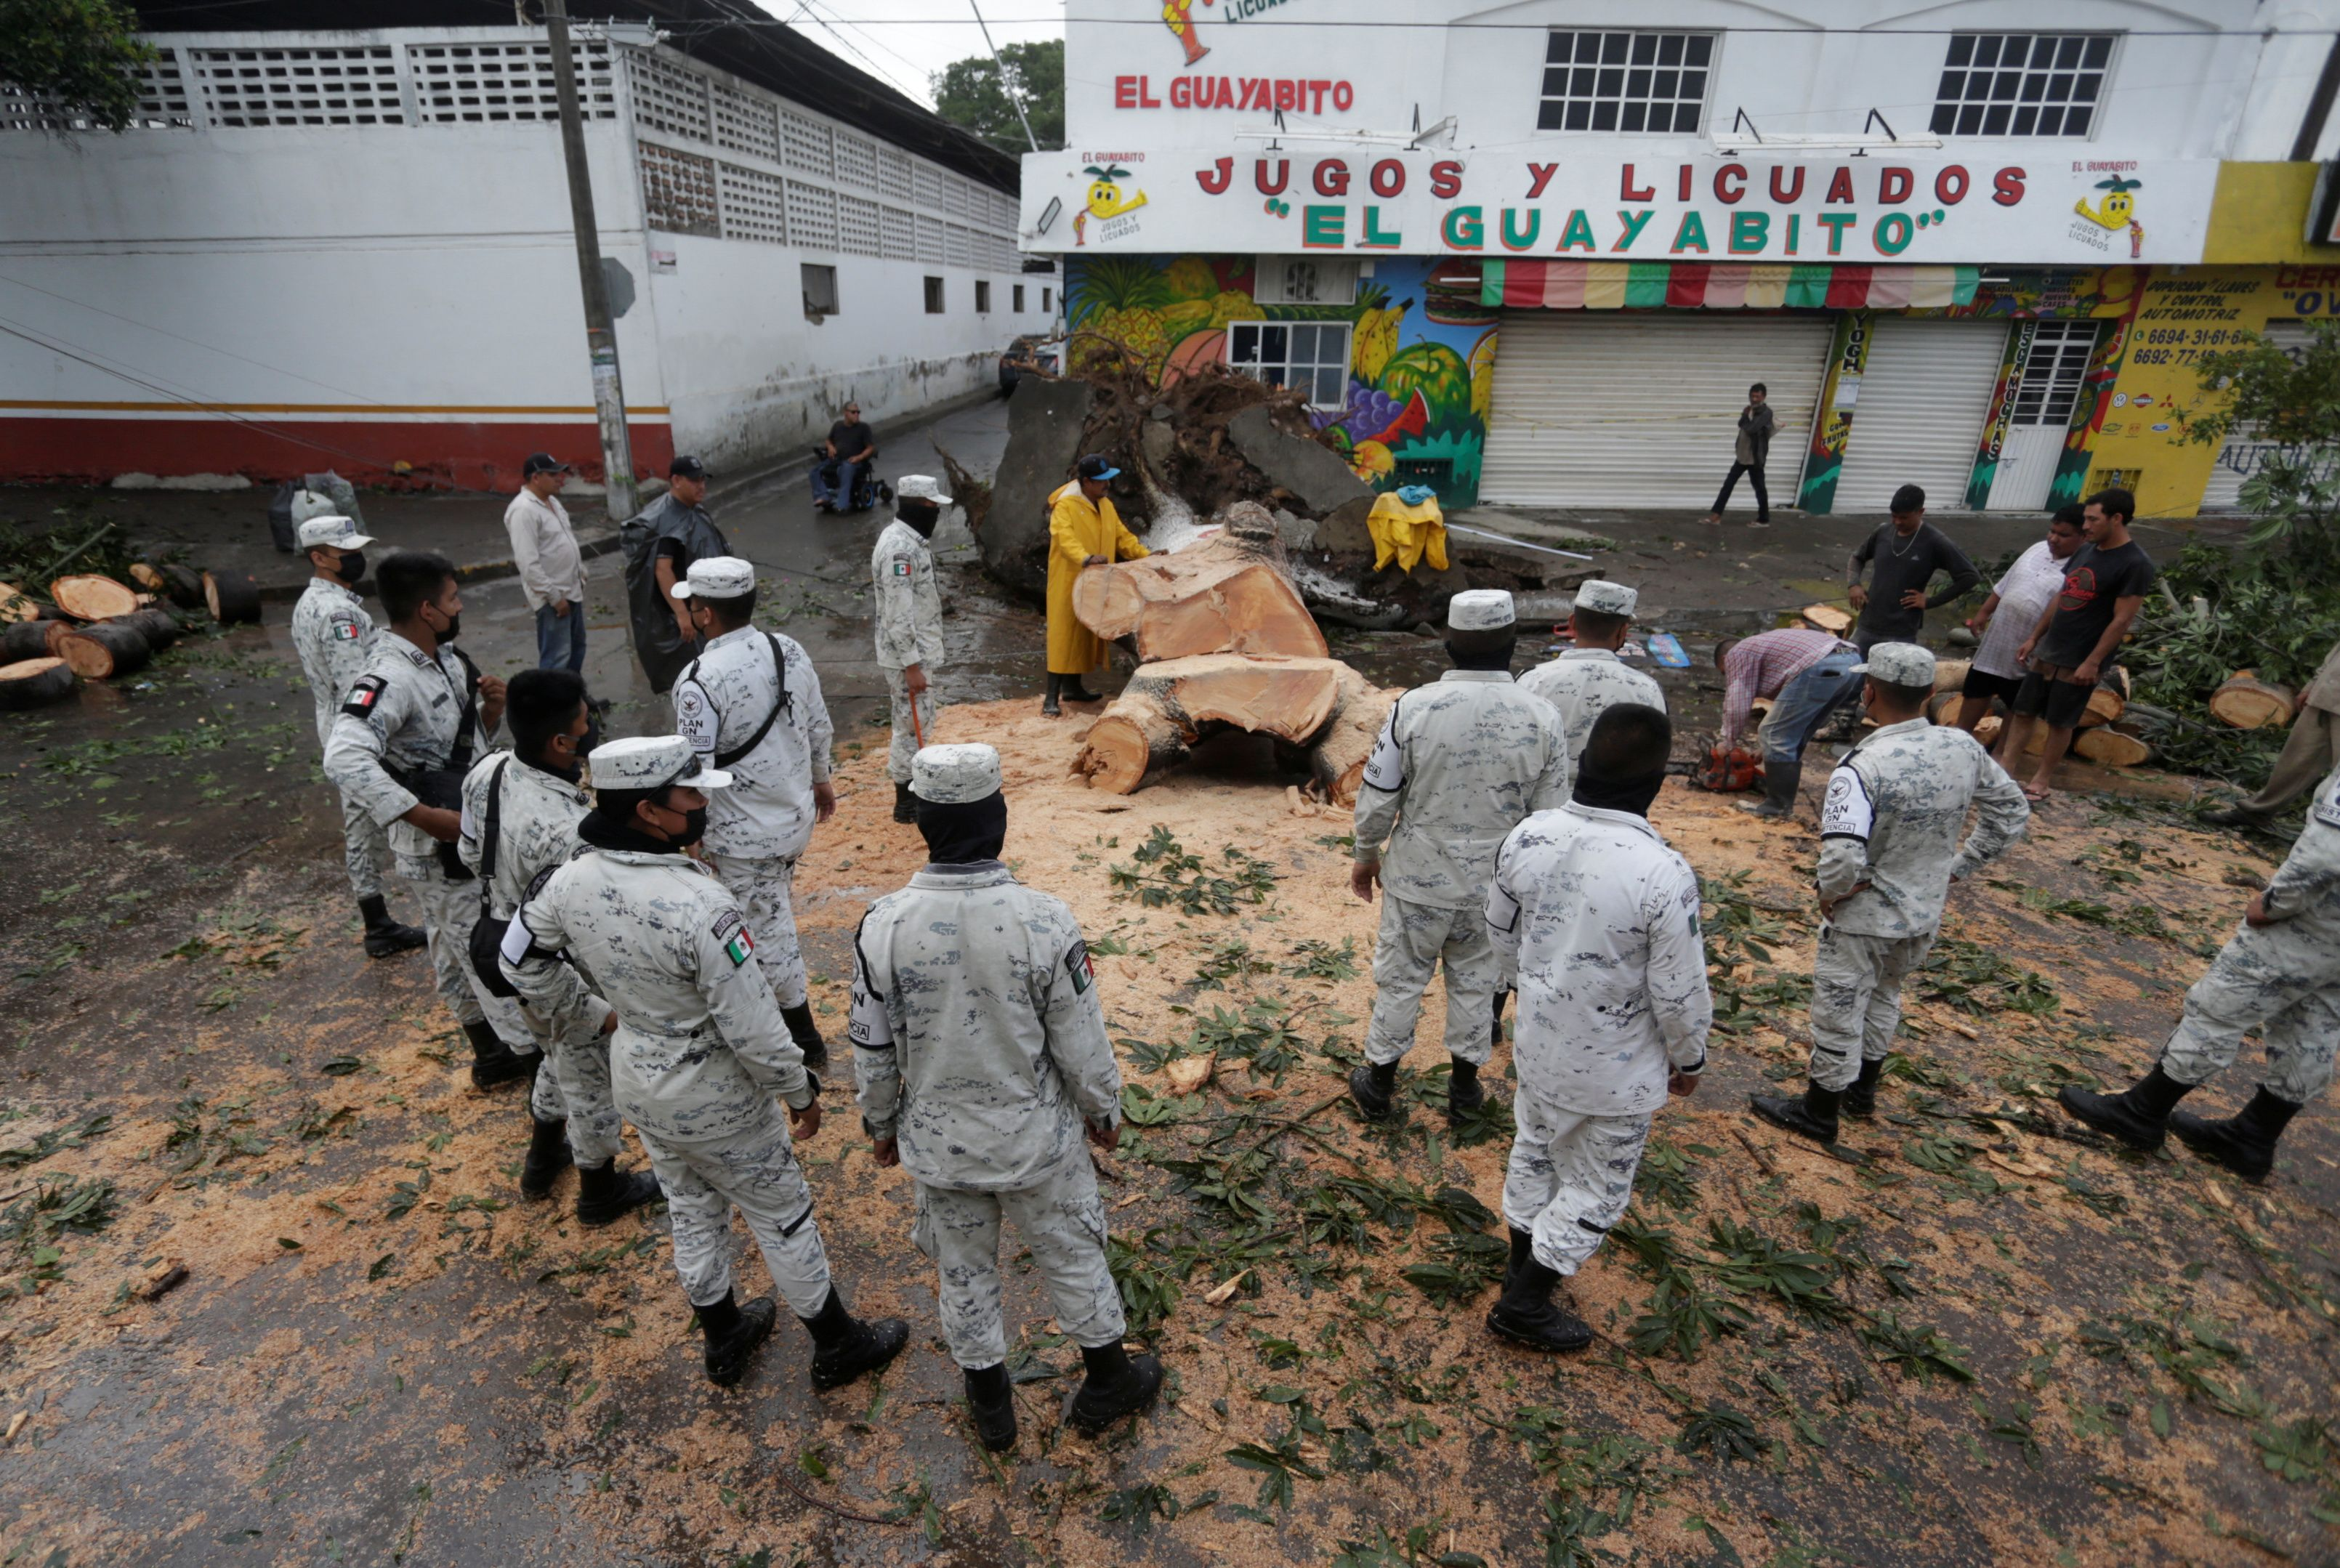 Members of the National Guard gather as hurricane Pamela pounds the Pacific coast resort with strong winds as it makes landfall in Mazatlan, Mexico October 13, 2021. REUTERS/Daniel Becerril